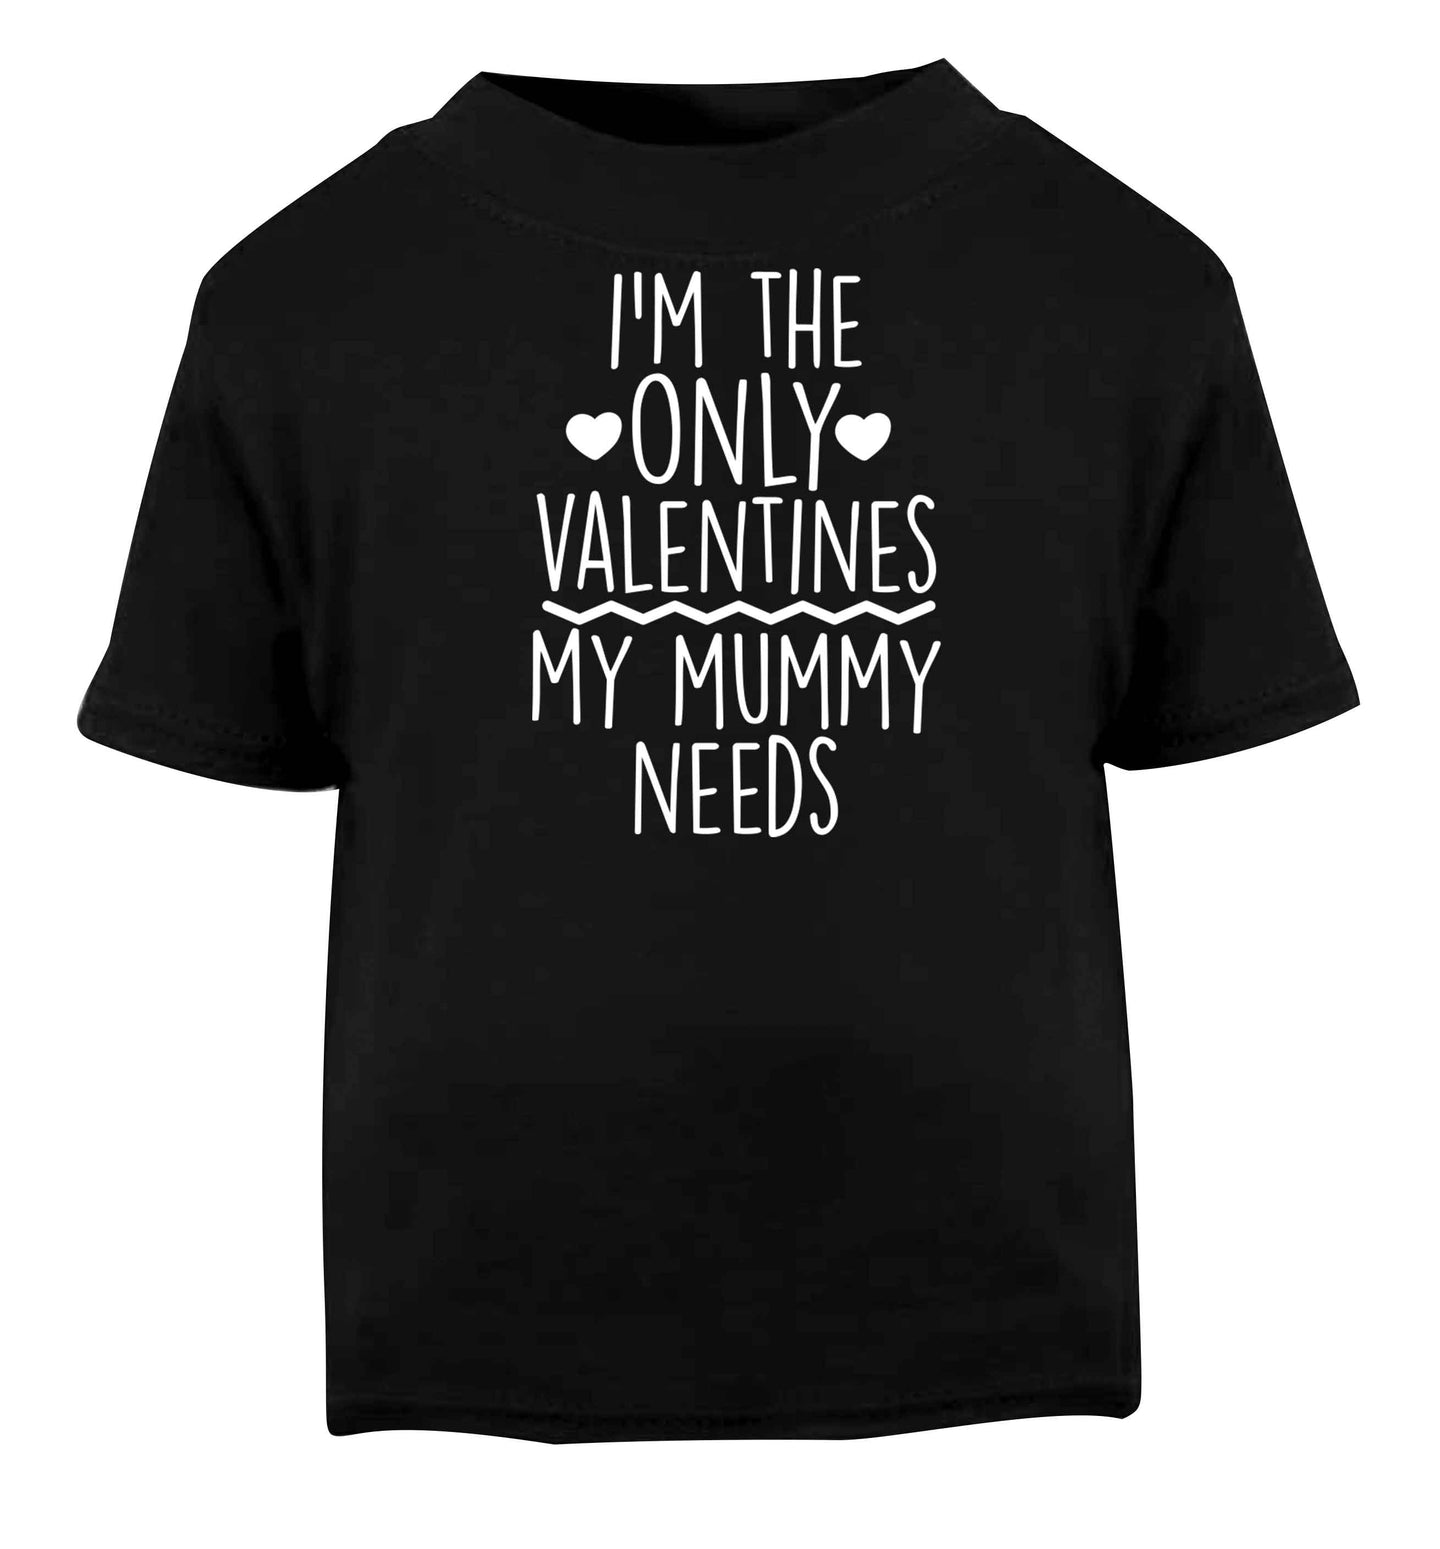 I'm the only valentines my mummy needs Black baby toddler Tshirt 2 years